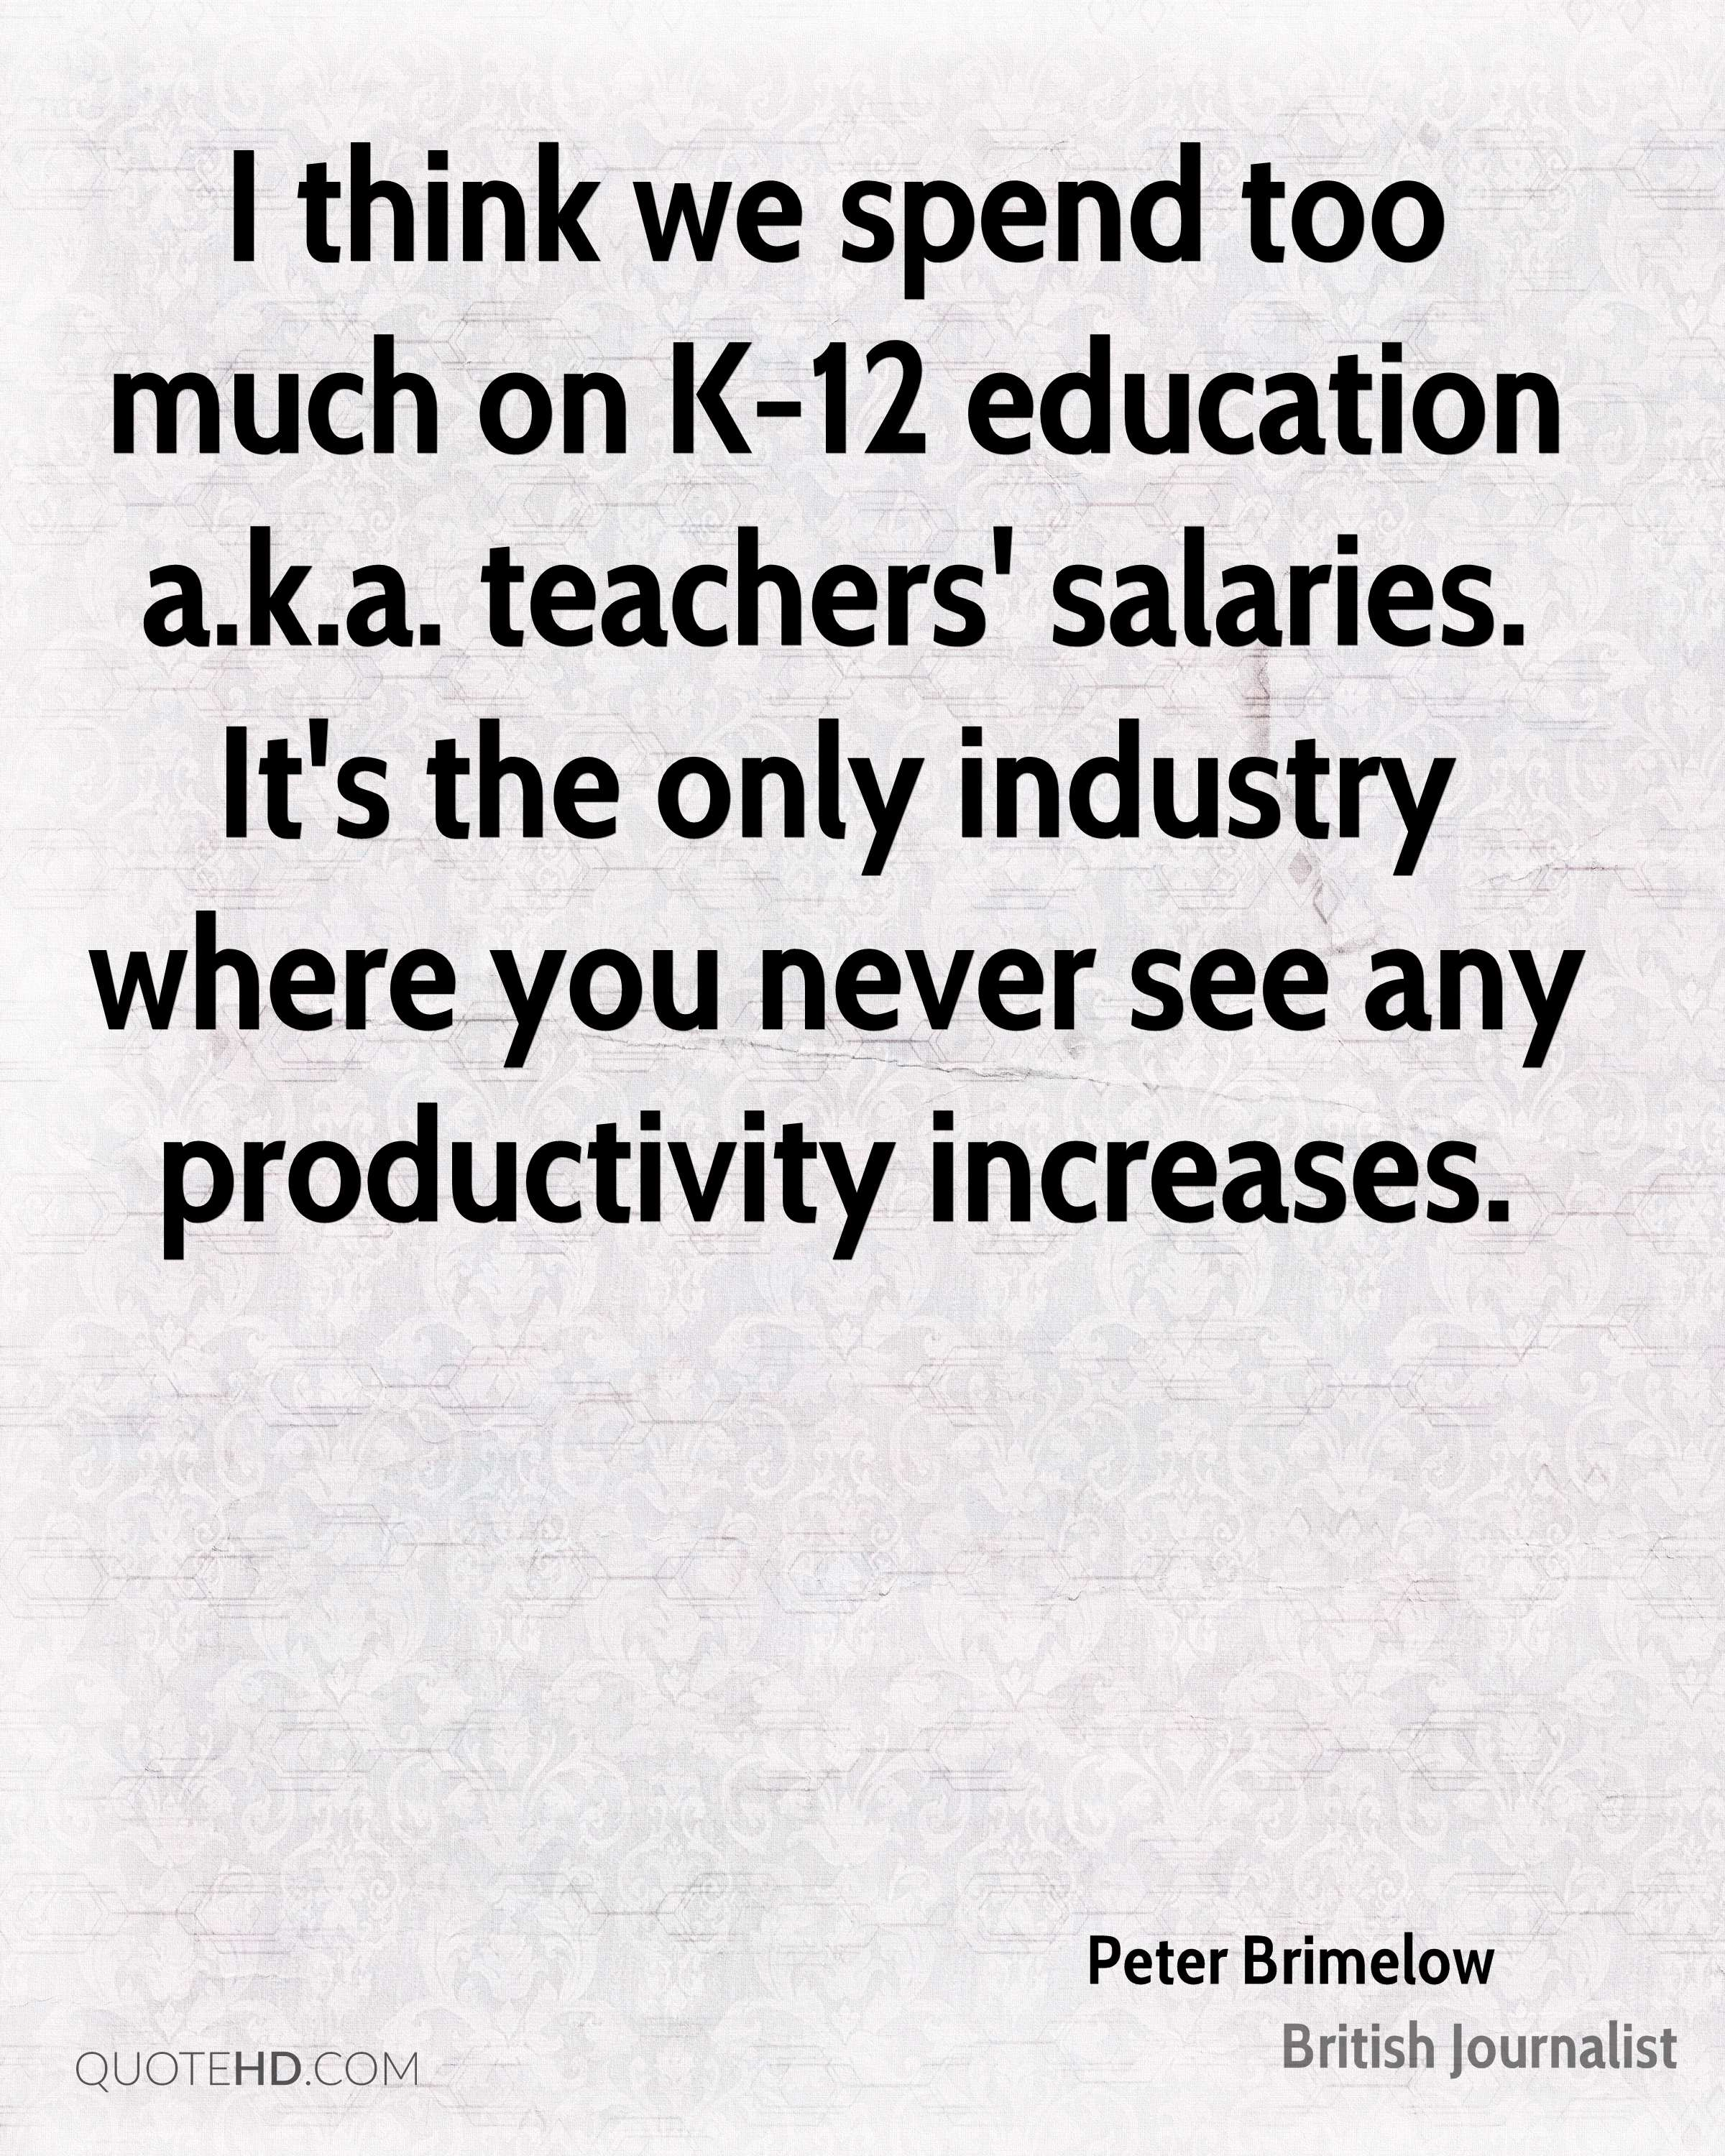 I think we spend too much on K-12 education a.k.a. teachers' salaries. It's the only industry where you never see any productivity increases.